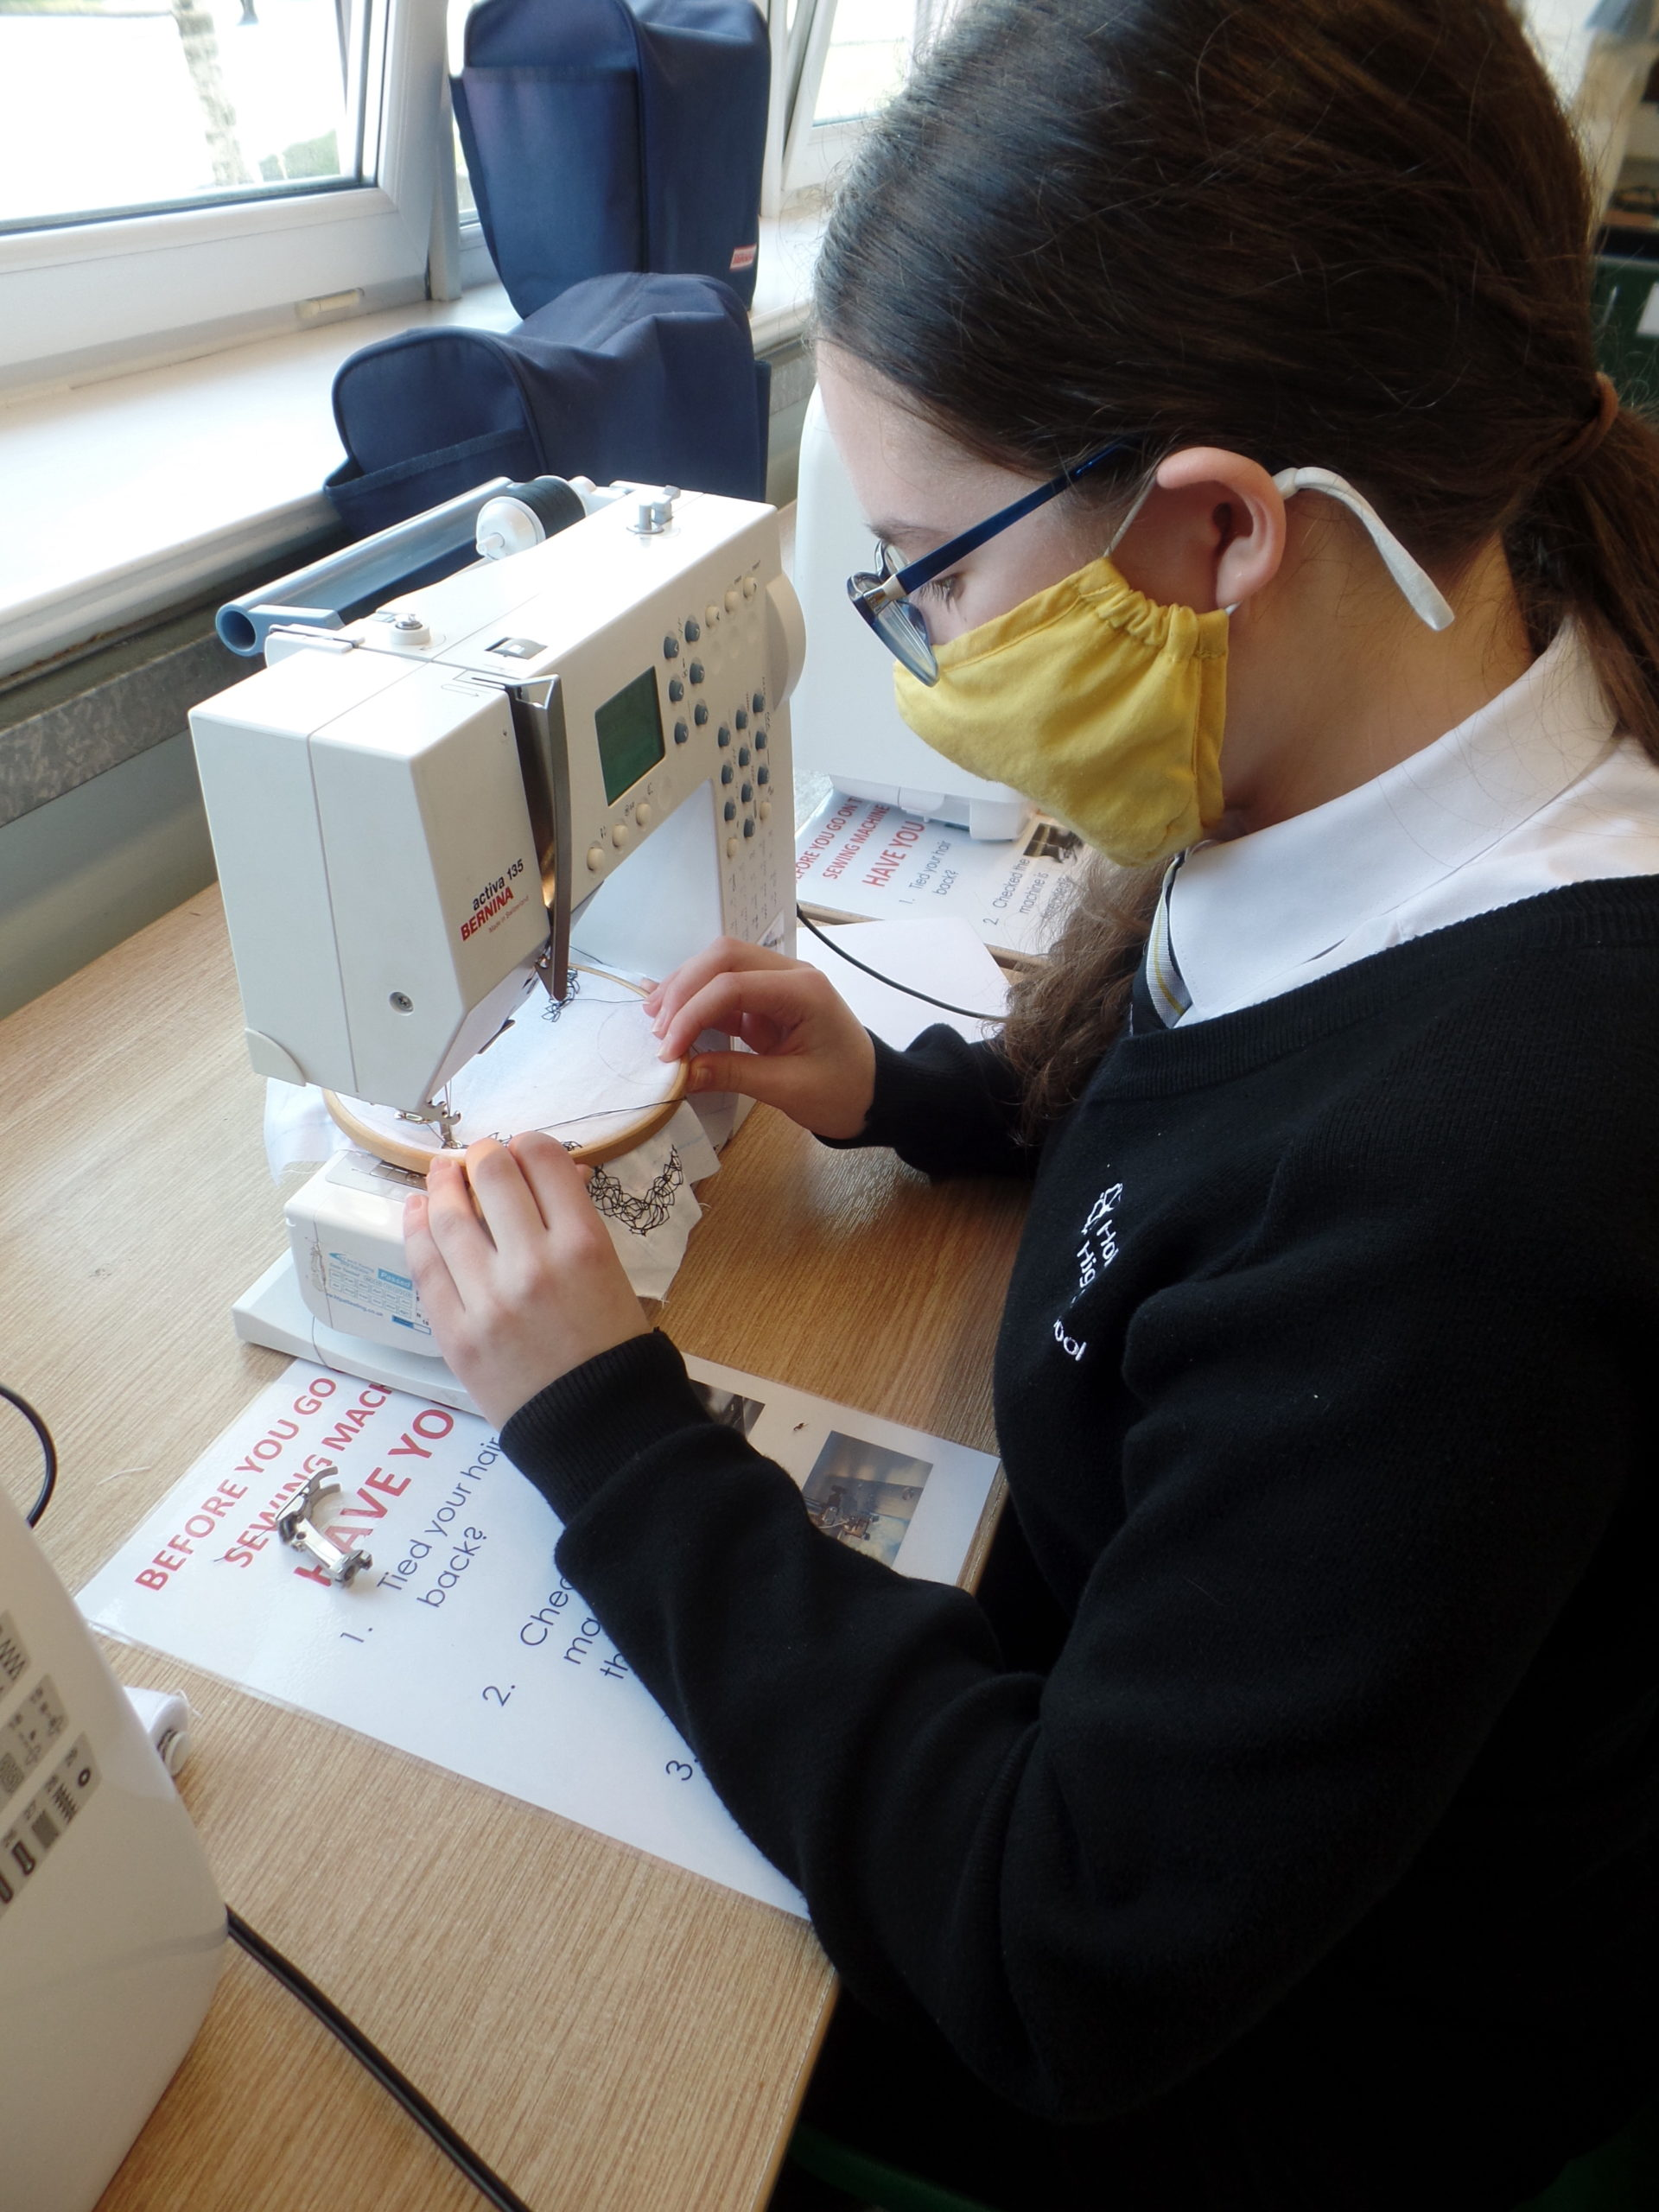 school girl with white skin and dark hair using a sewing machine